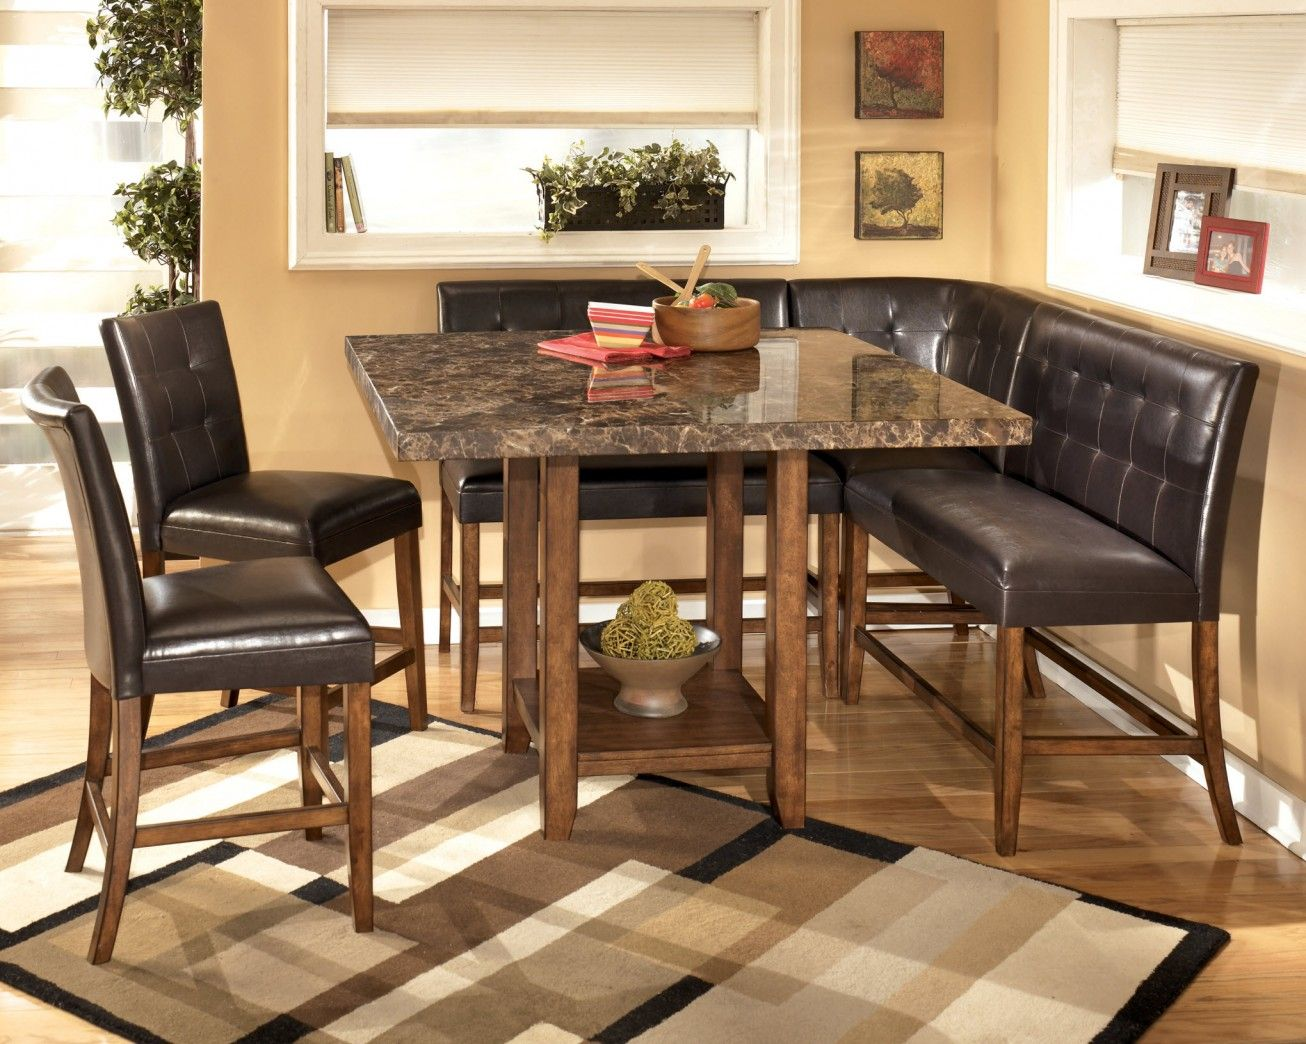 Corner Dining Room Furniture Excellent Ashley Sets With Marble Top Table And Black Leather Chairs Nook